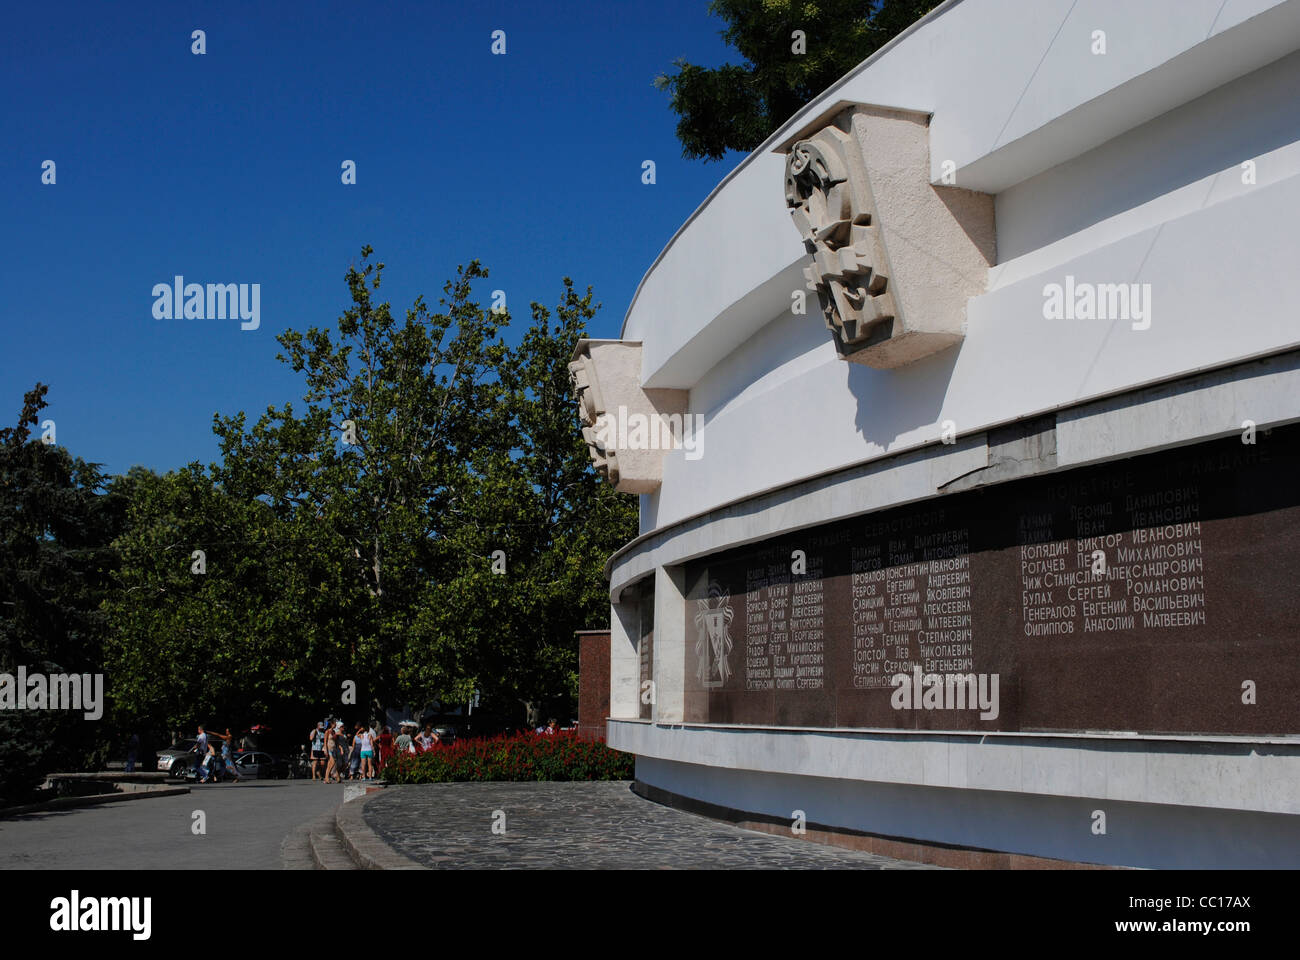 Ukraine. Sevastopol. Memorial to commemorate the Siege of Sevastopol (1941-1942) during the World War II by the - Stock Image